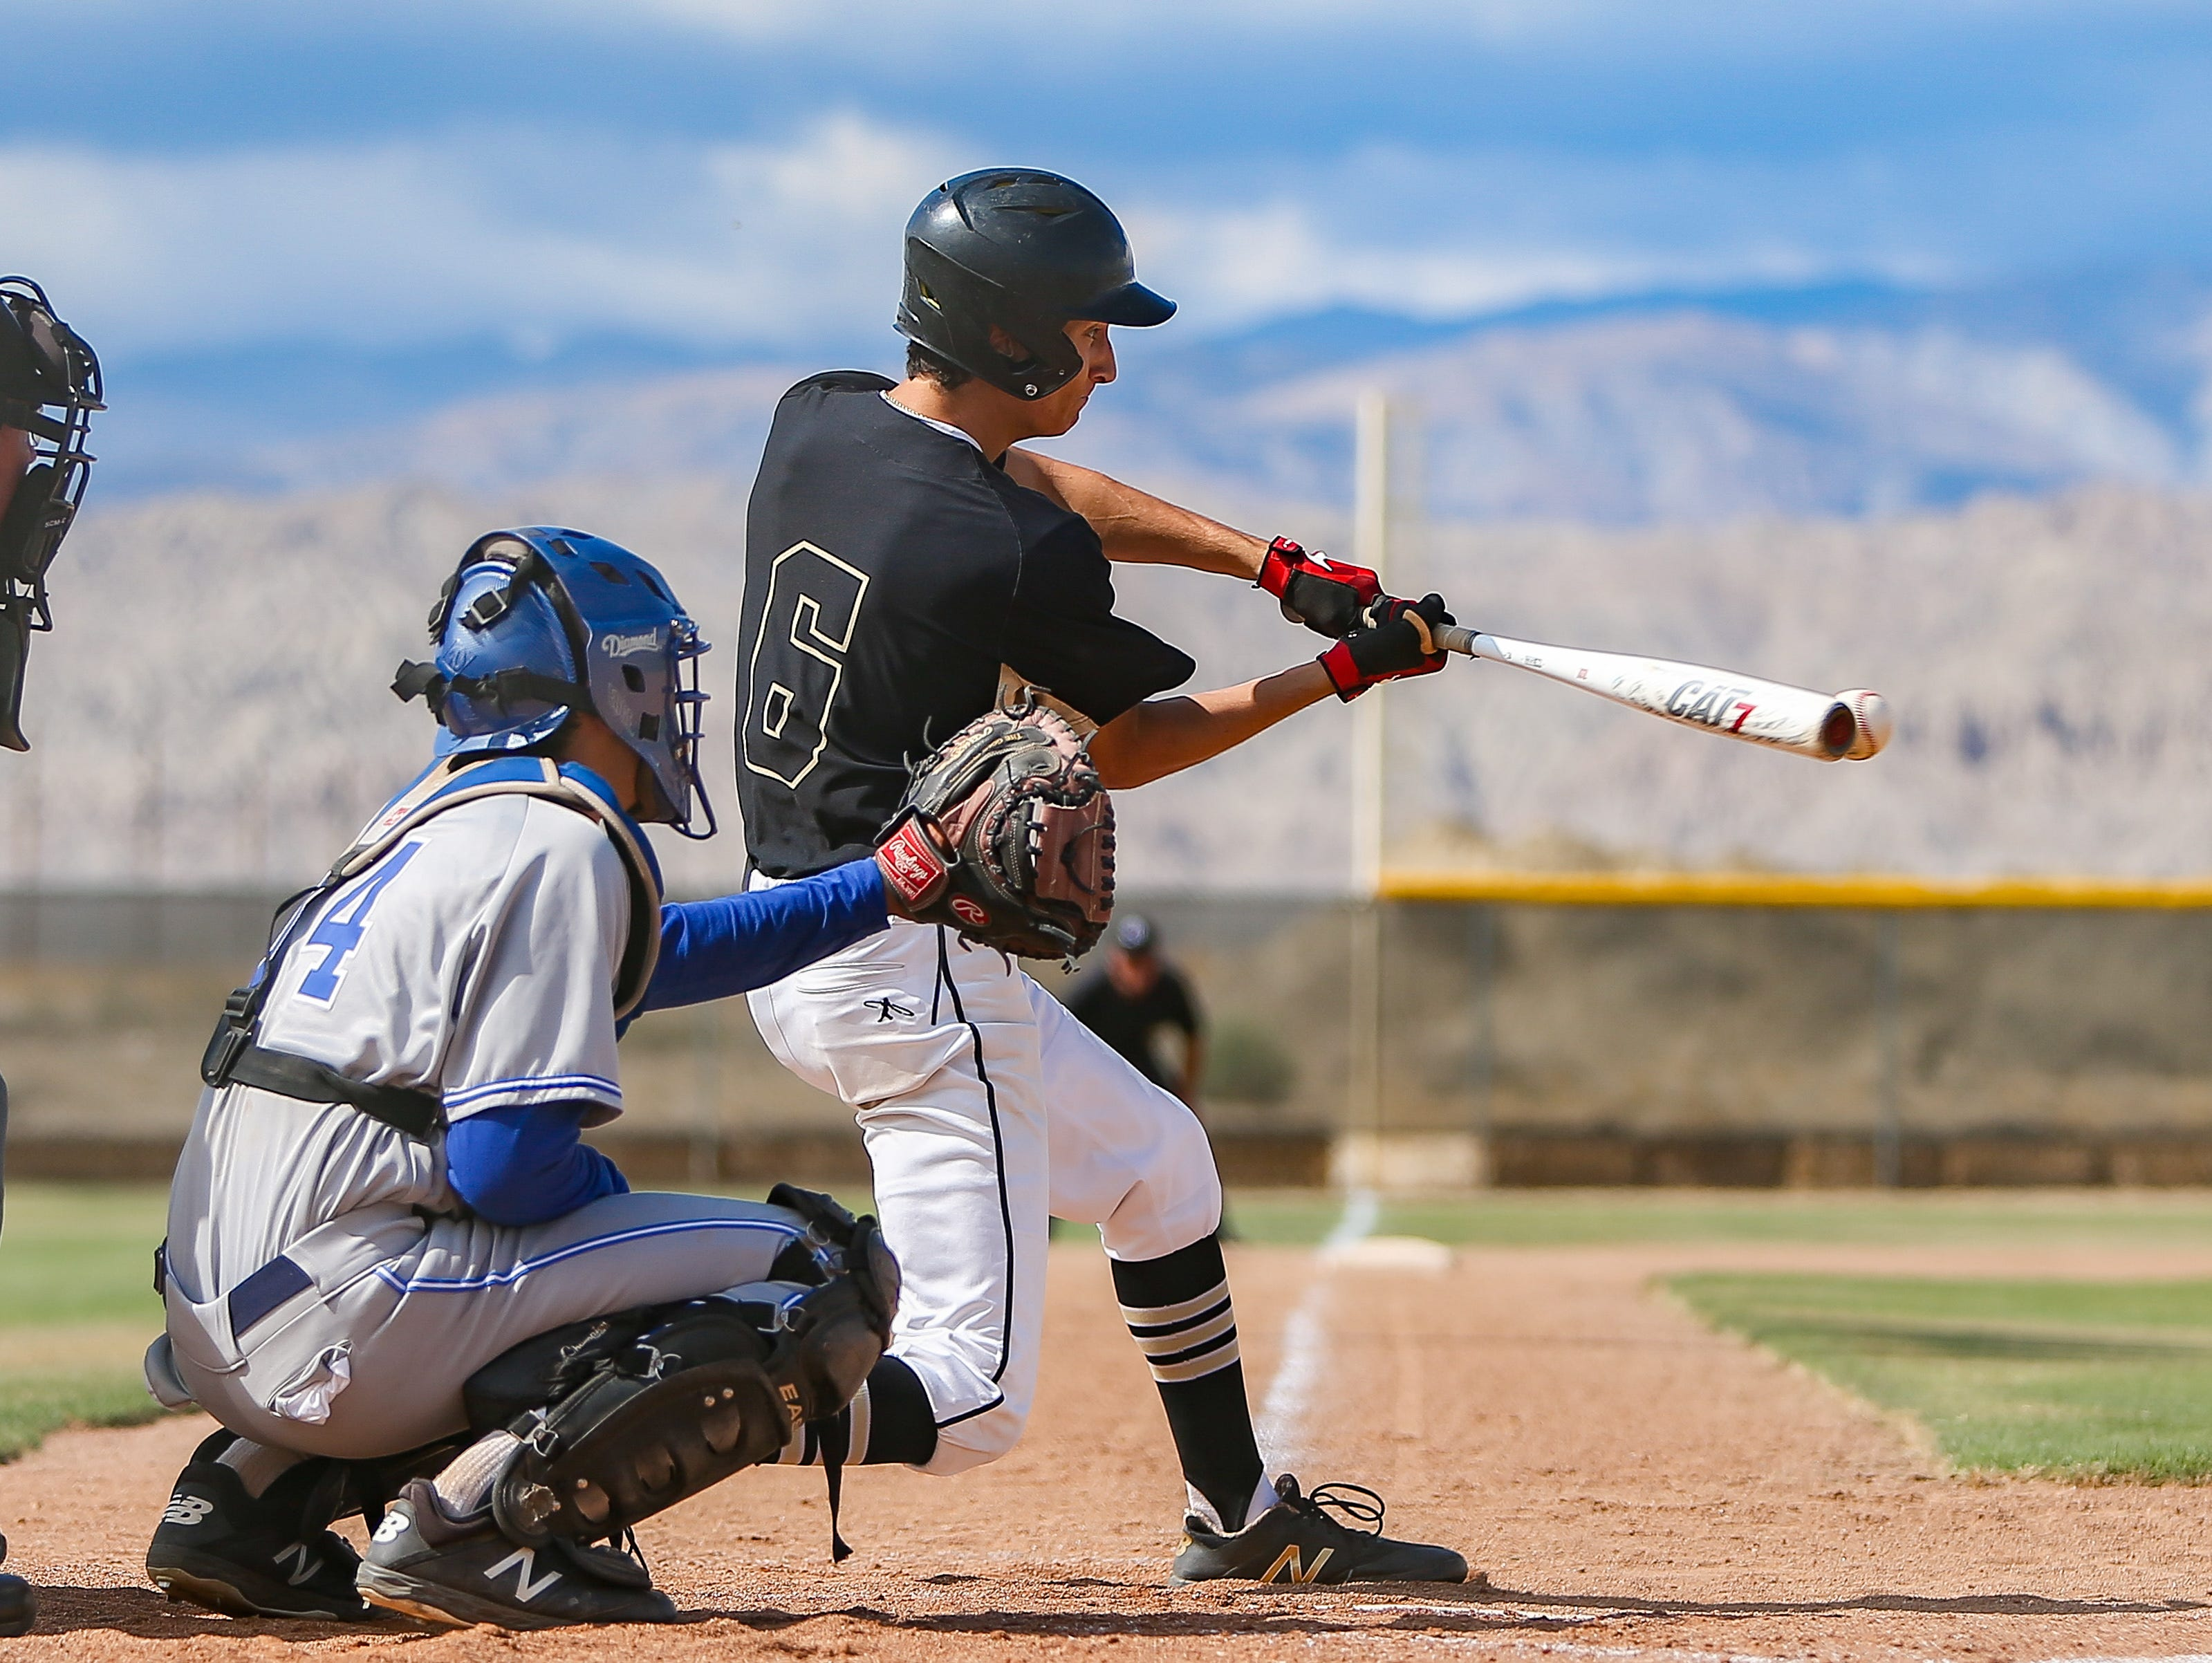 Action from Xavier Prep's 5-4 playoff victory over Century on May 10, 2019 in the CIF quarterfinals.